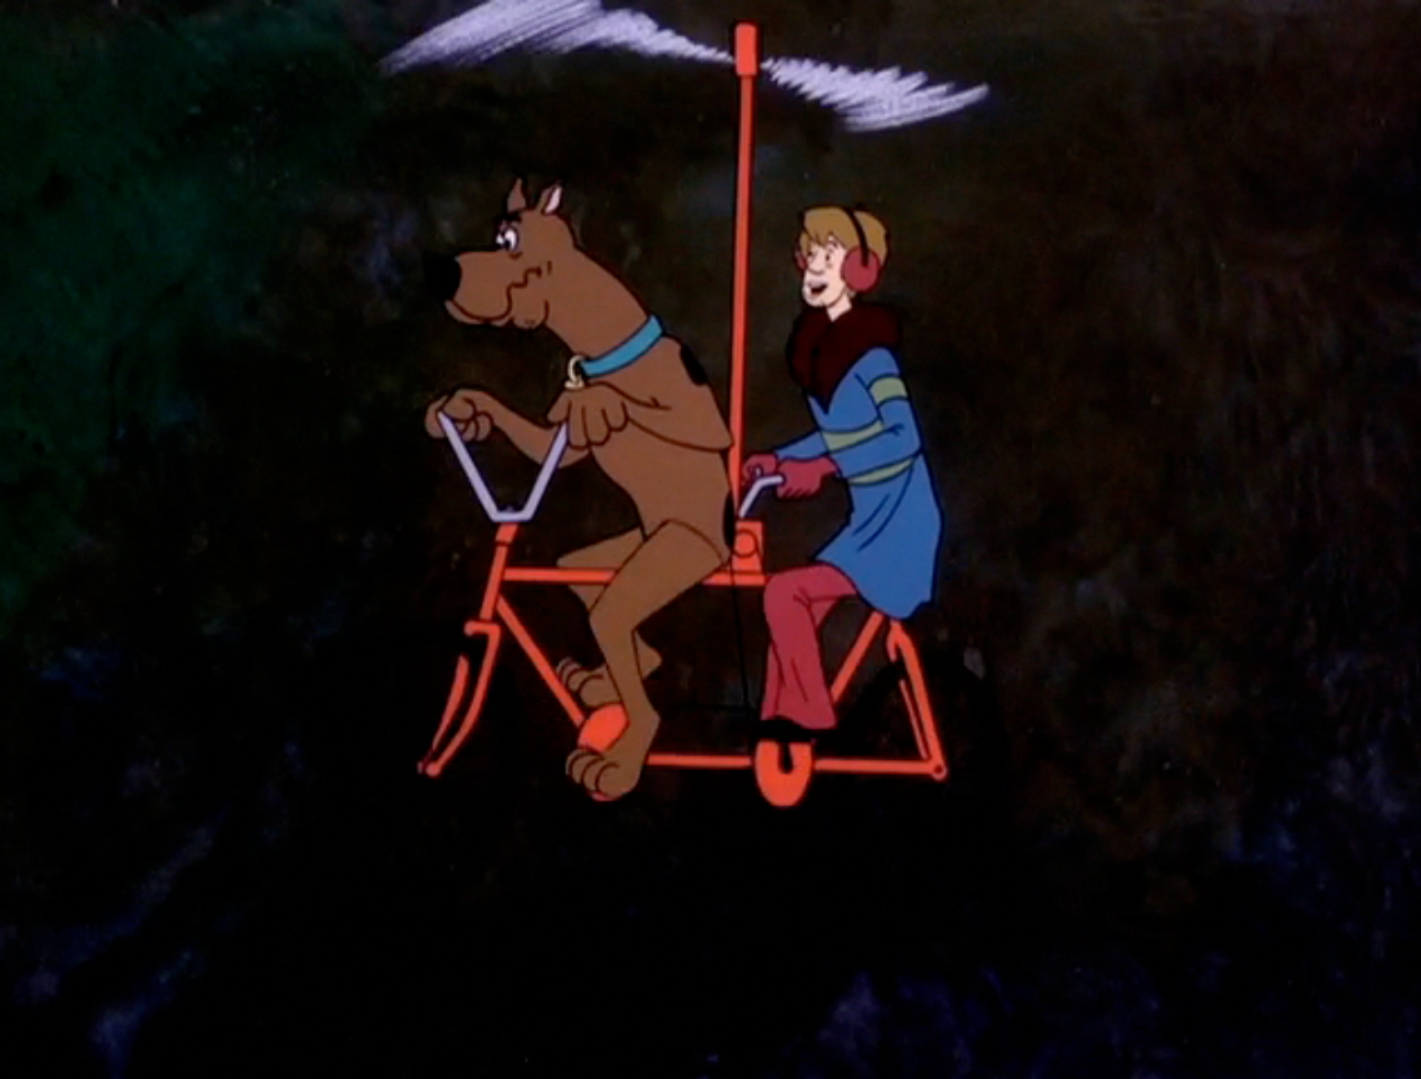 Scooby-Dooby-bike-o-copter